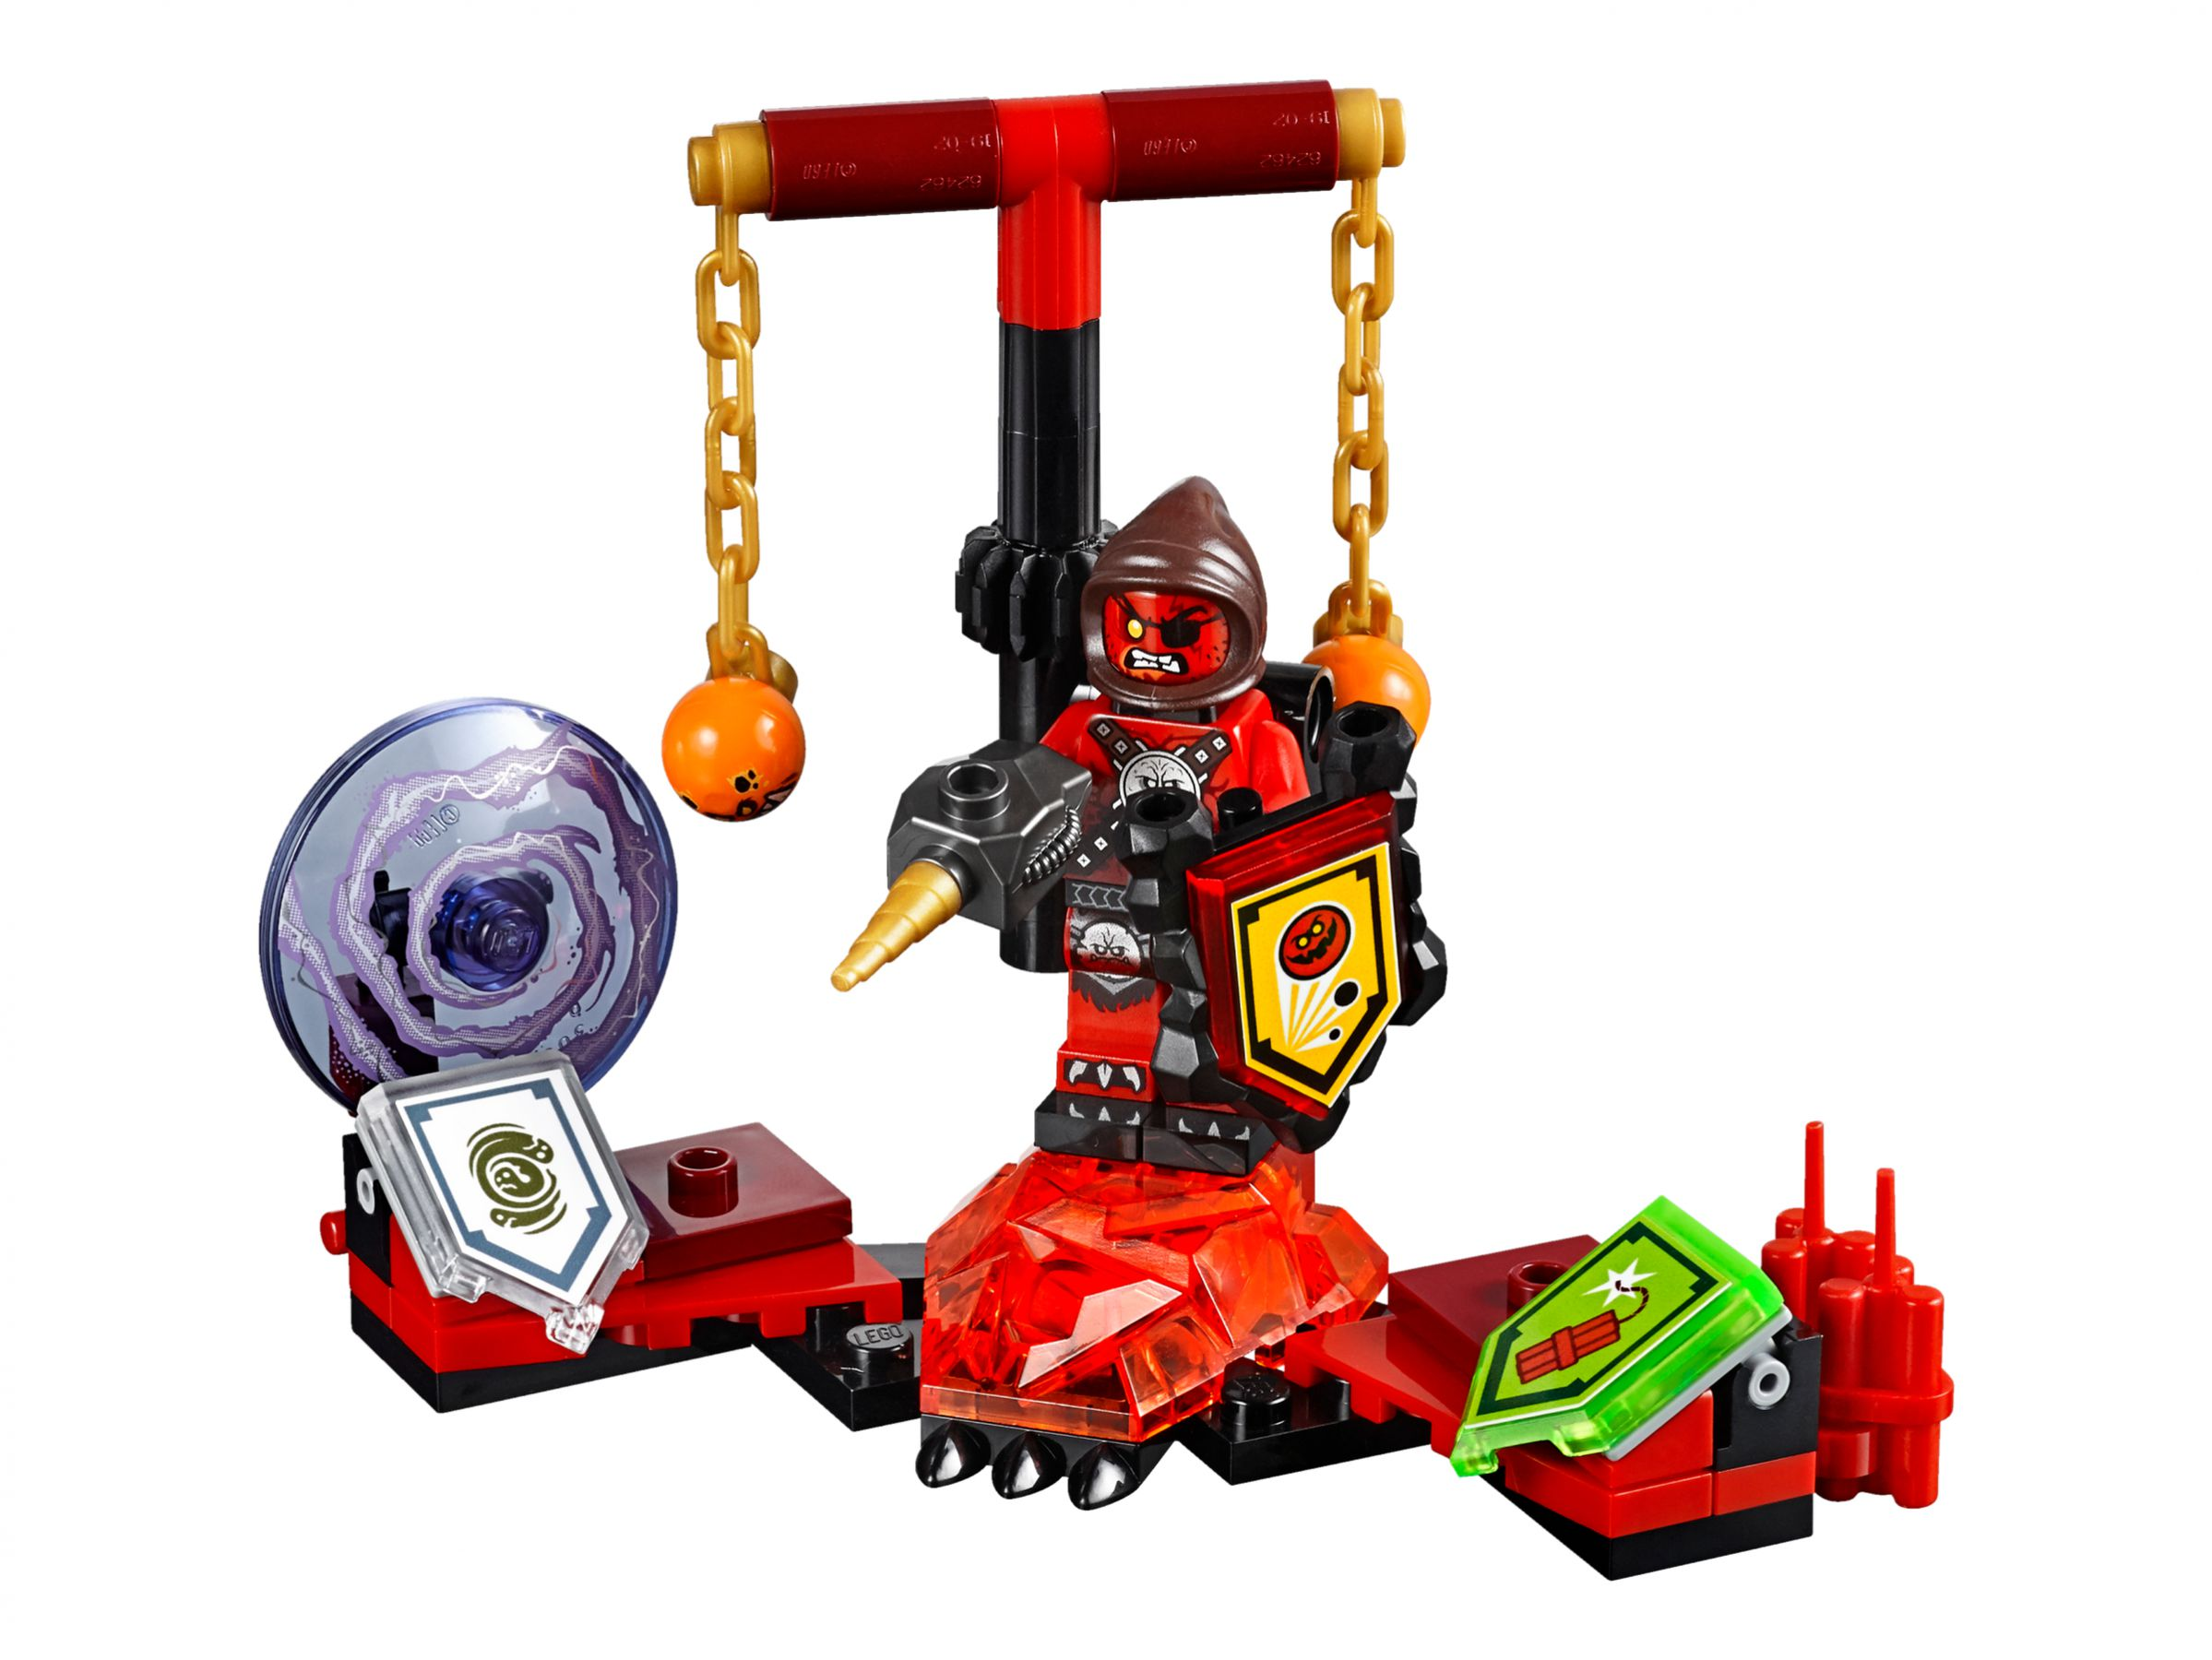 LEGO Nexo Knights 70334 Ultimativer Monster-Meister LEGO_70334.jpg